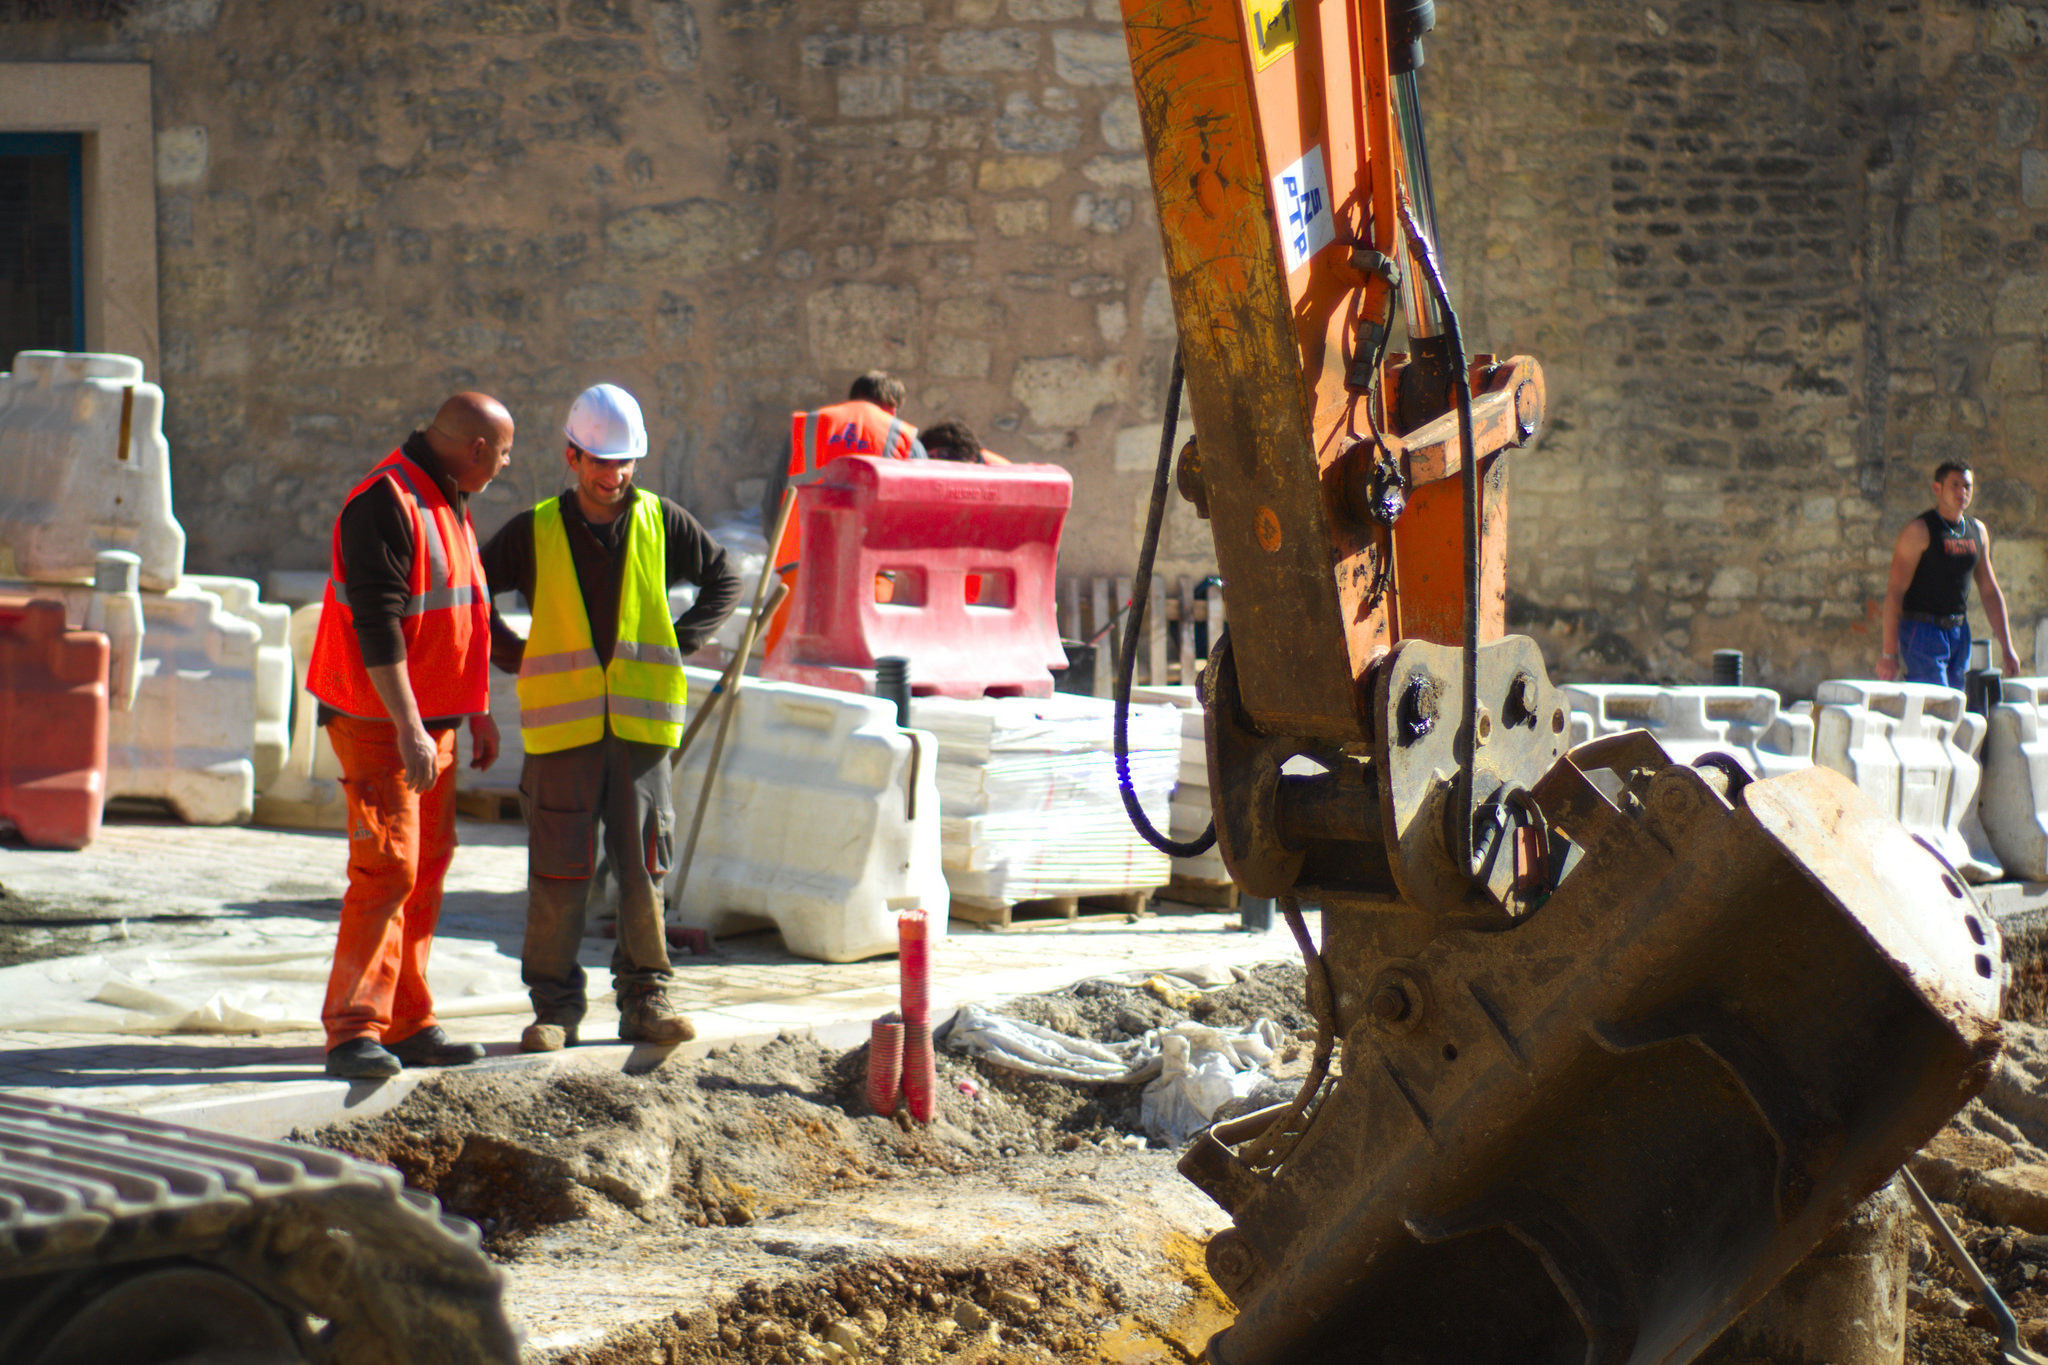 building_site_construction_France_CREDITGuillaume-Galdrat_Flickr